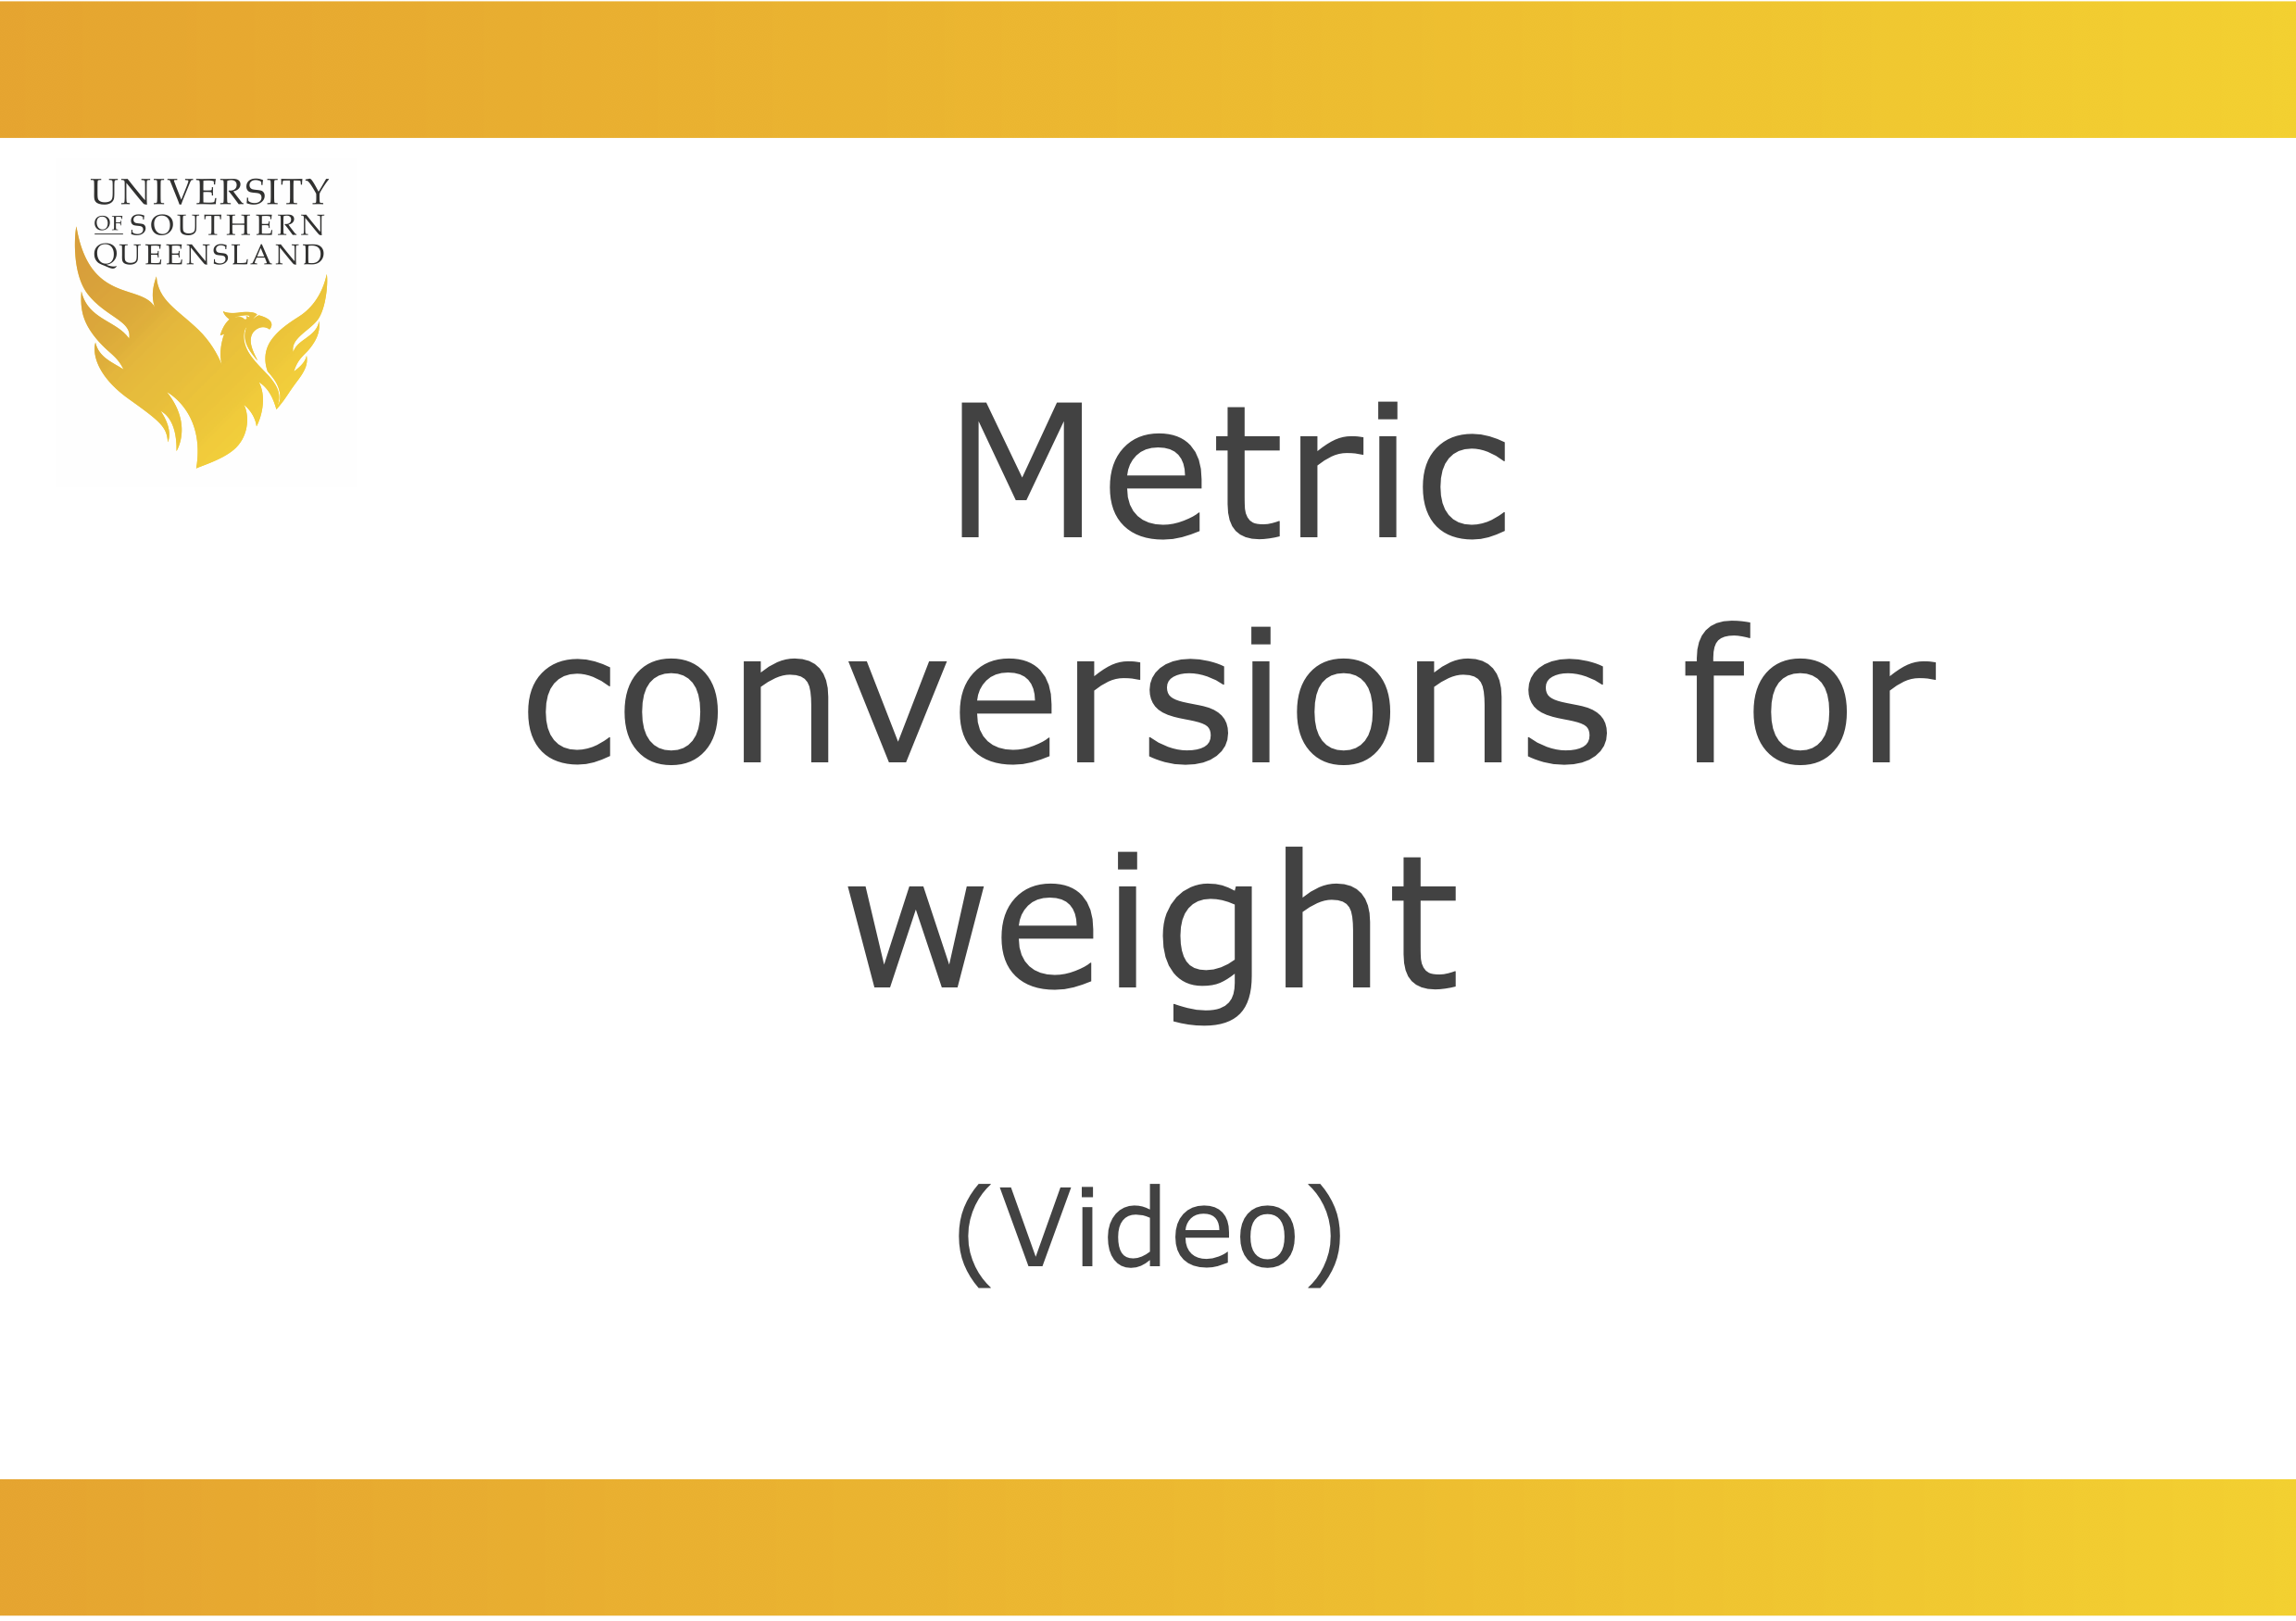 Metric conversions for weight